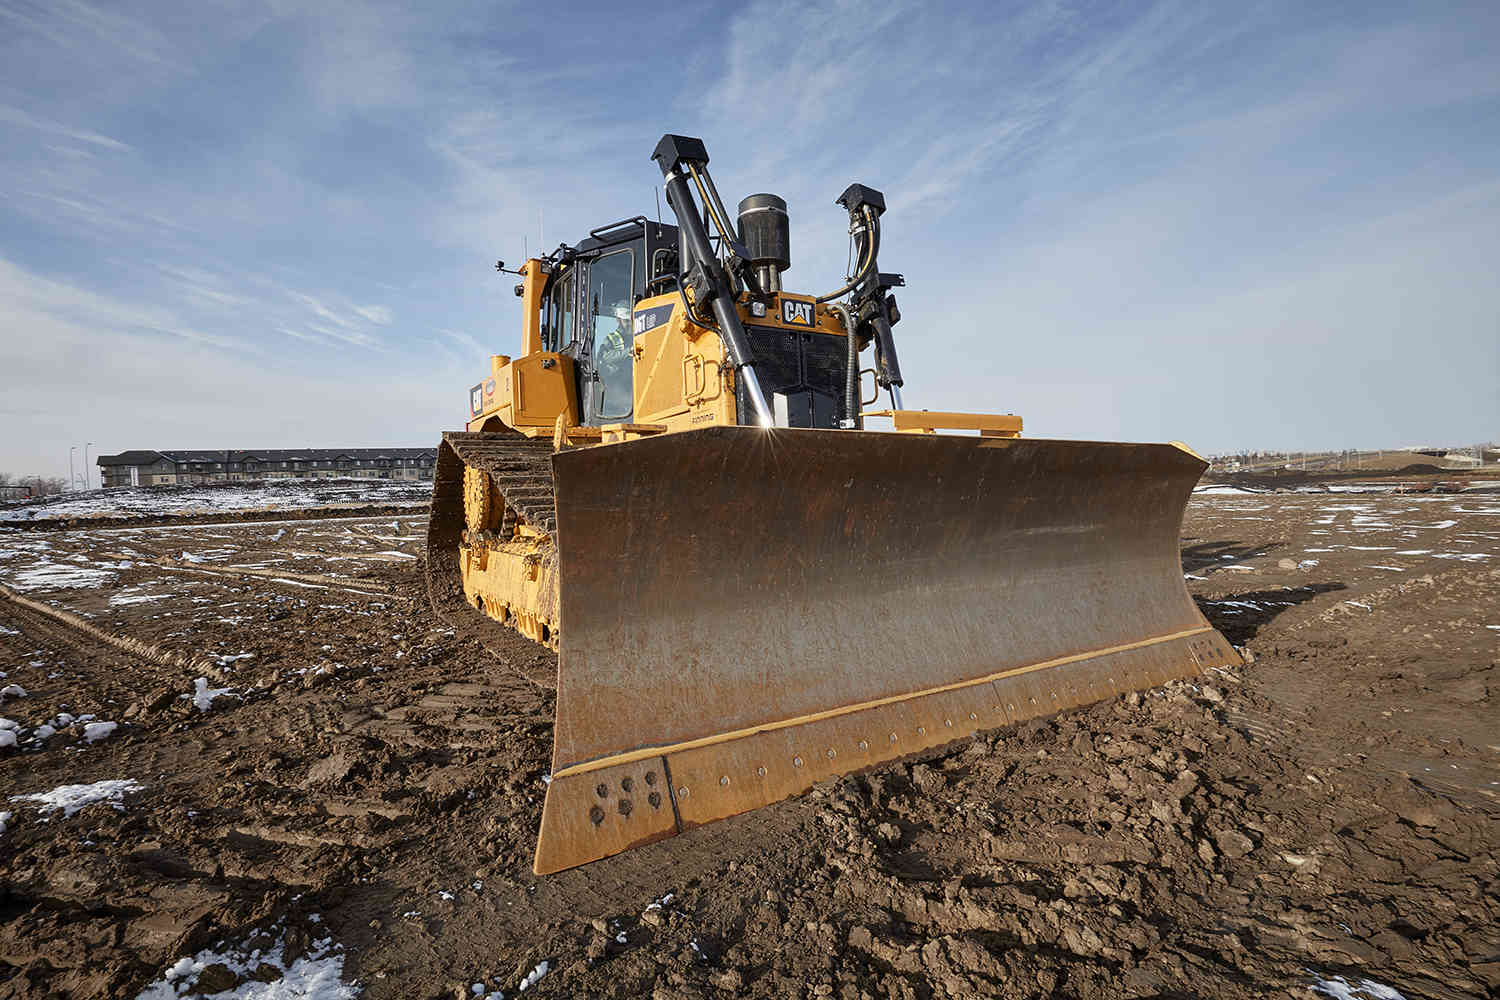 5 Things to Look for When Buying a Used Dozer